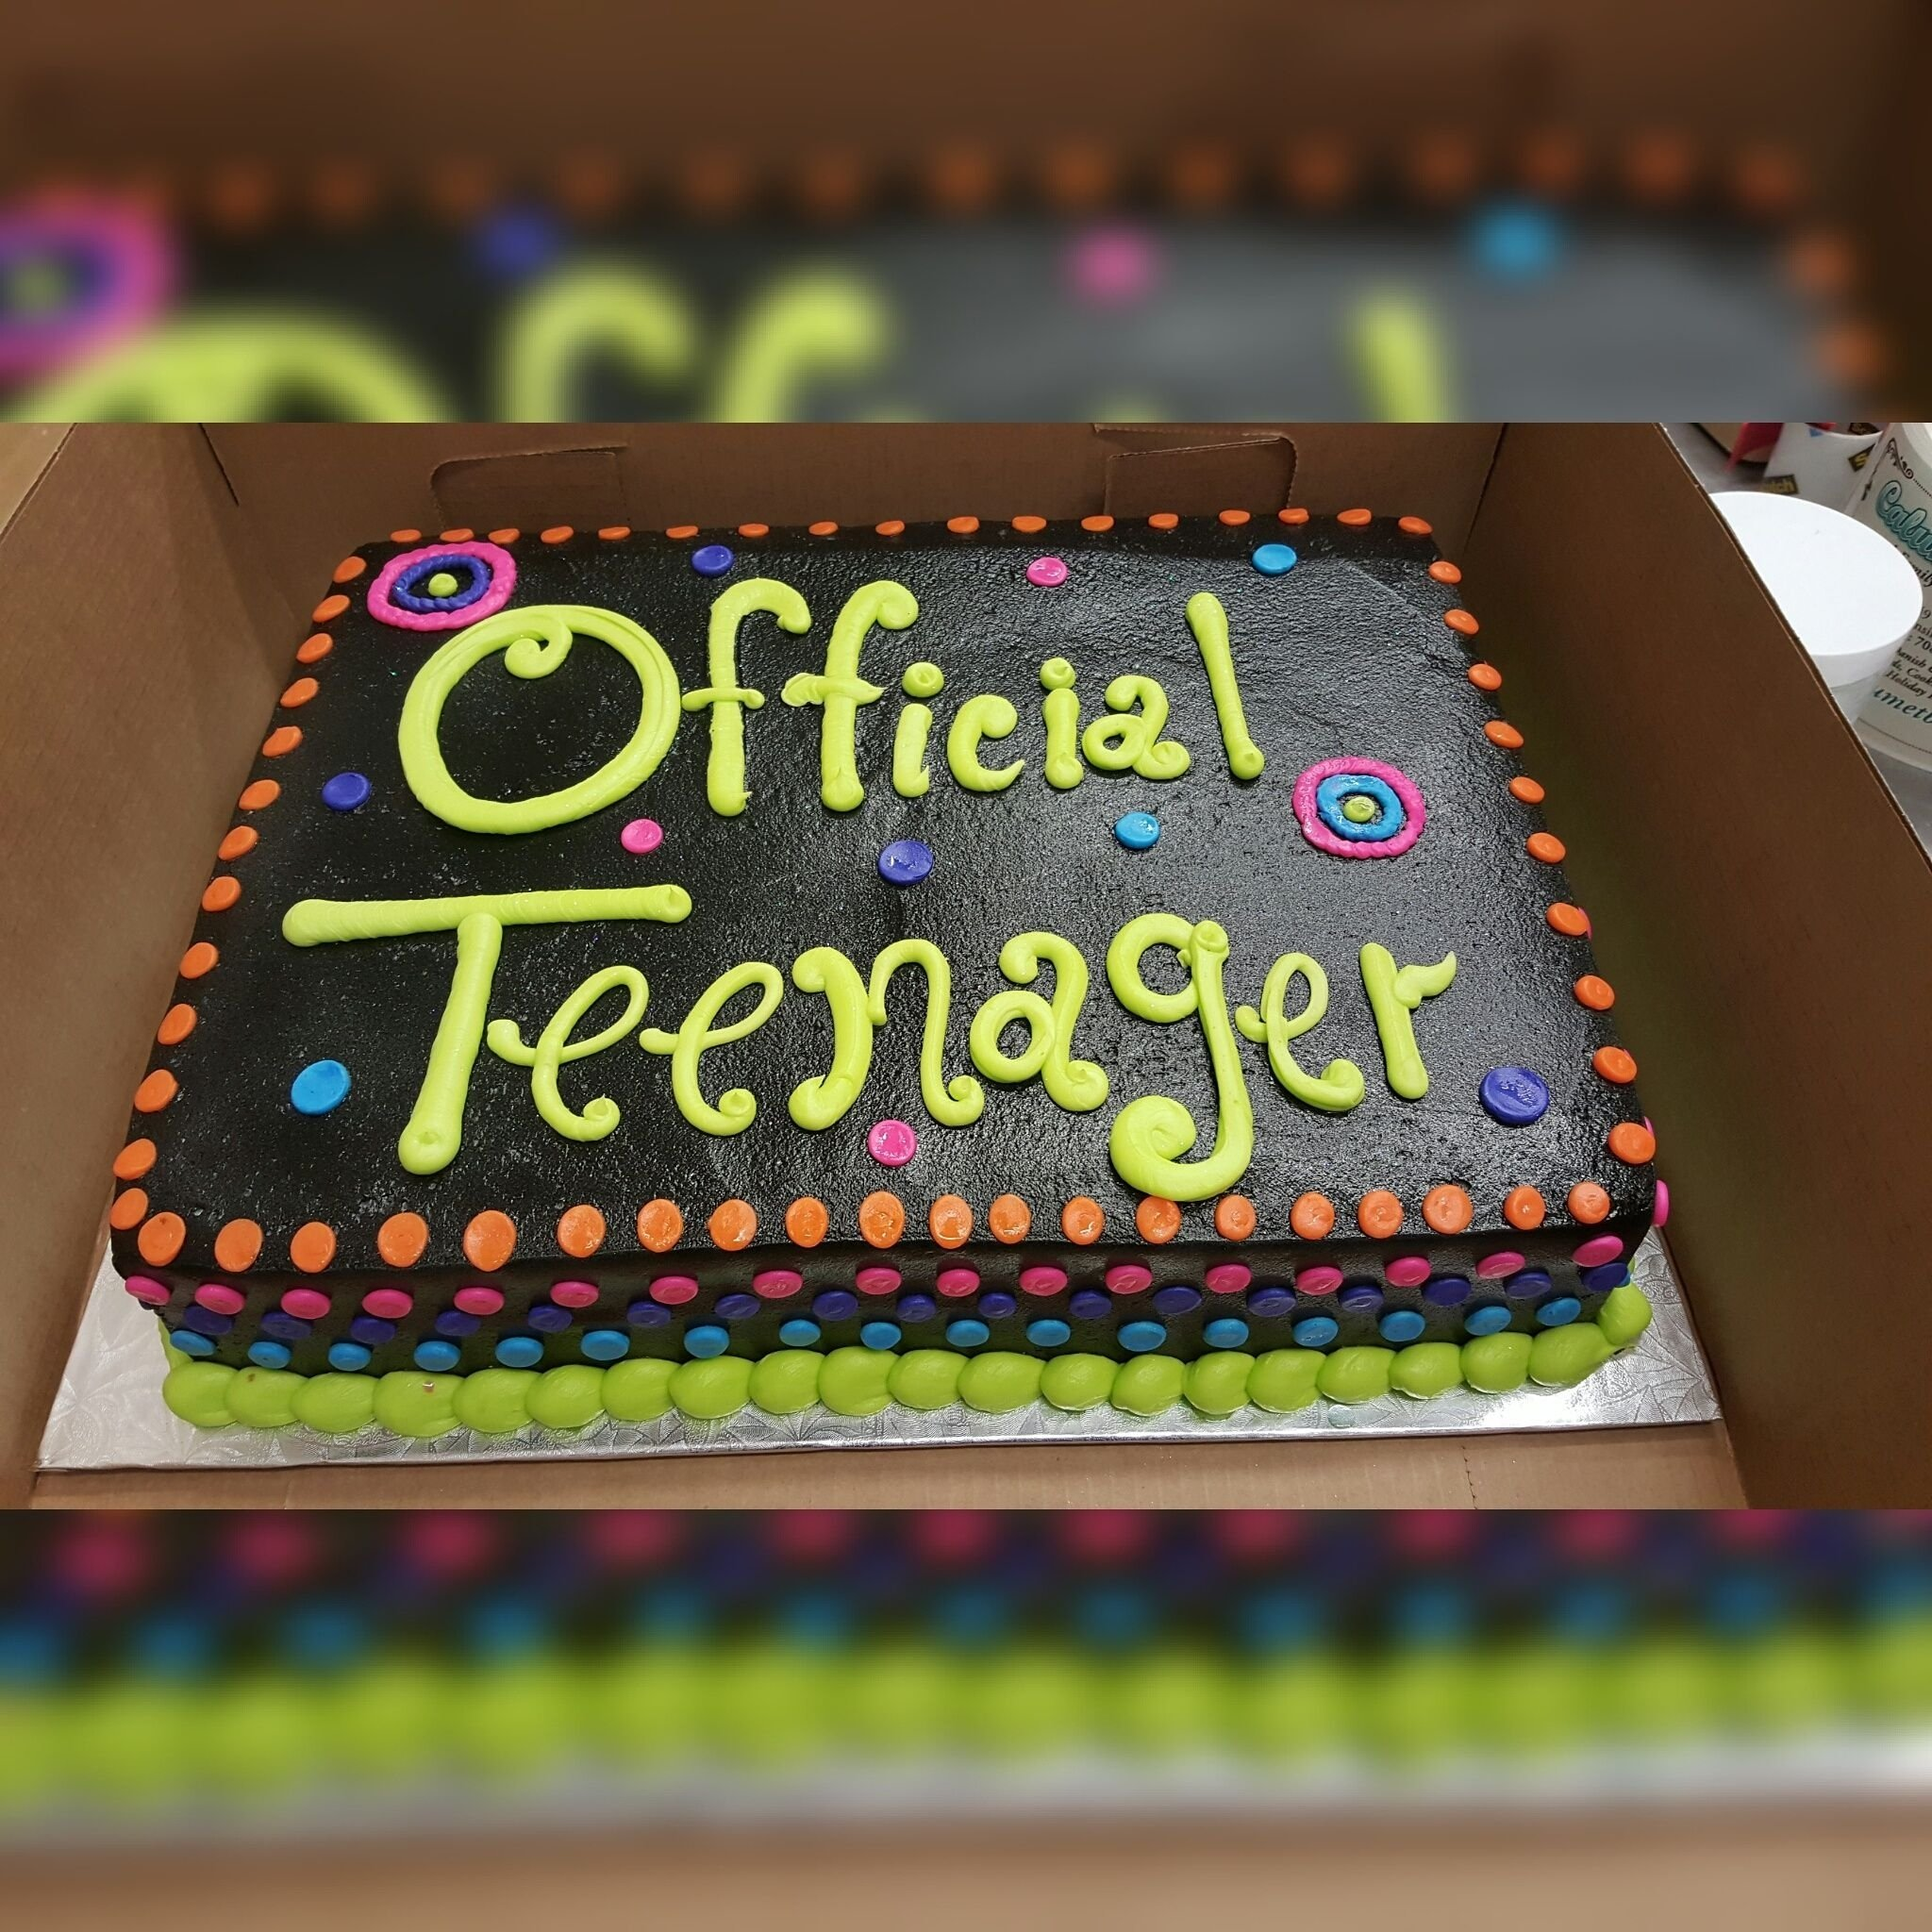 10 Awesome 13 Yr Old Birthday Party Ideas calumet bakery official teenager cake milestone birthday cakes 1 2020